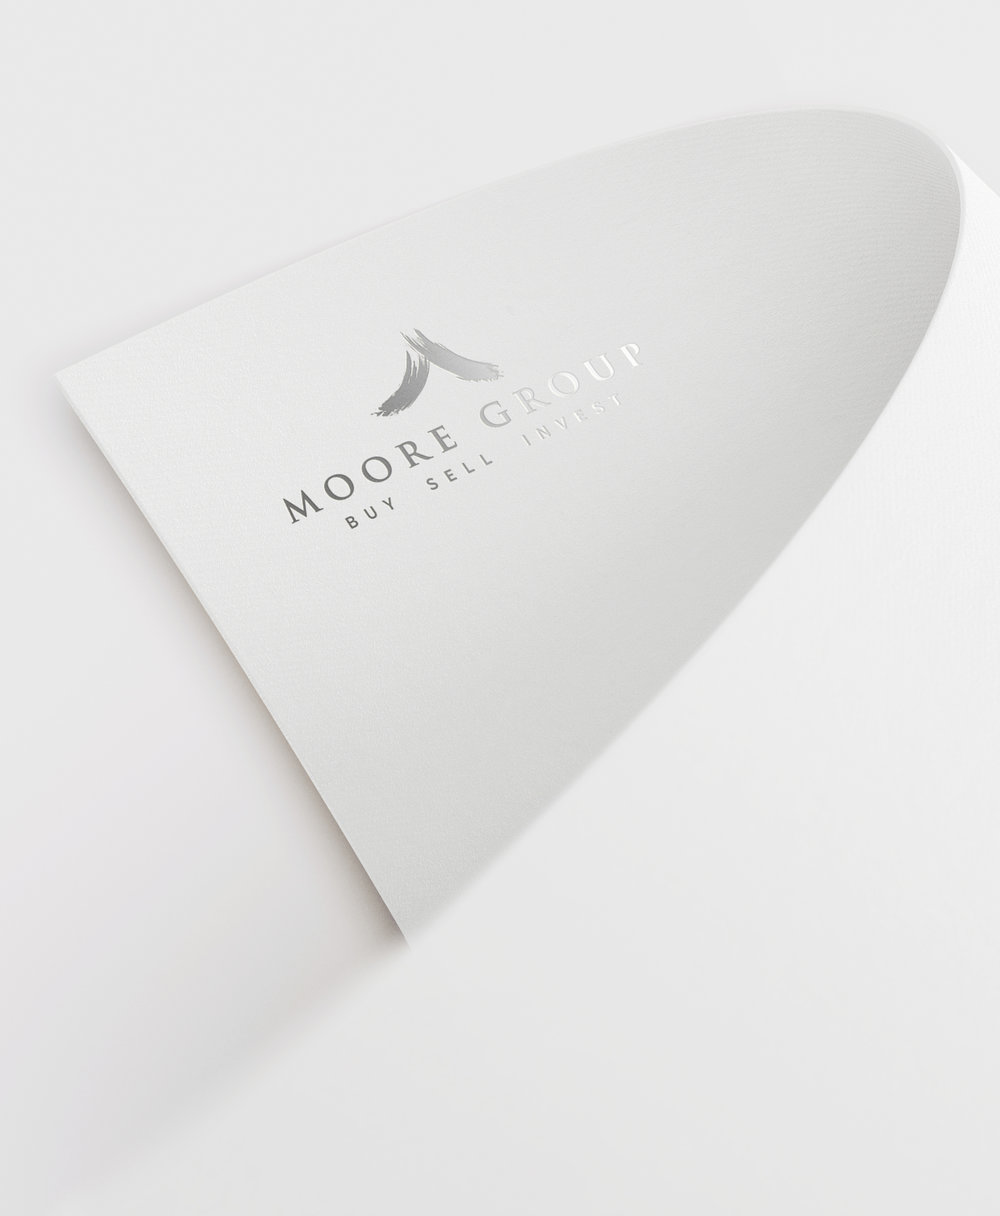 moore-group-winnipeg-remaz-team-branding-design-logo-letterhead-clover-and-crow